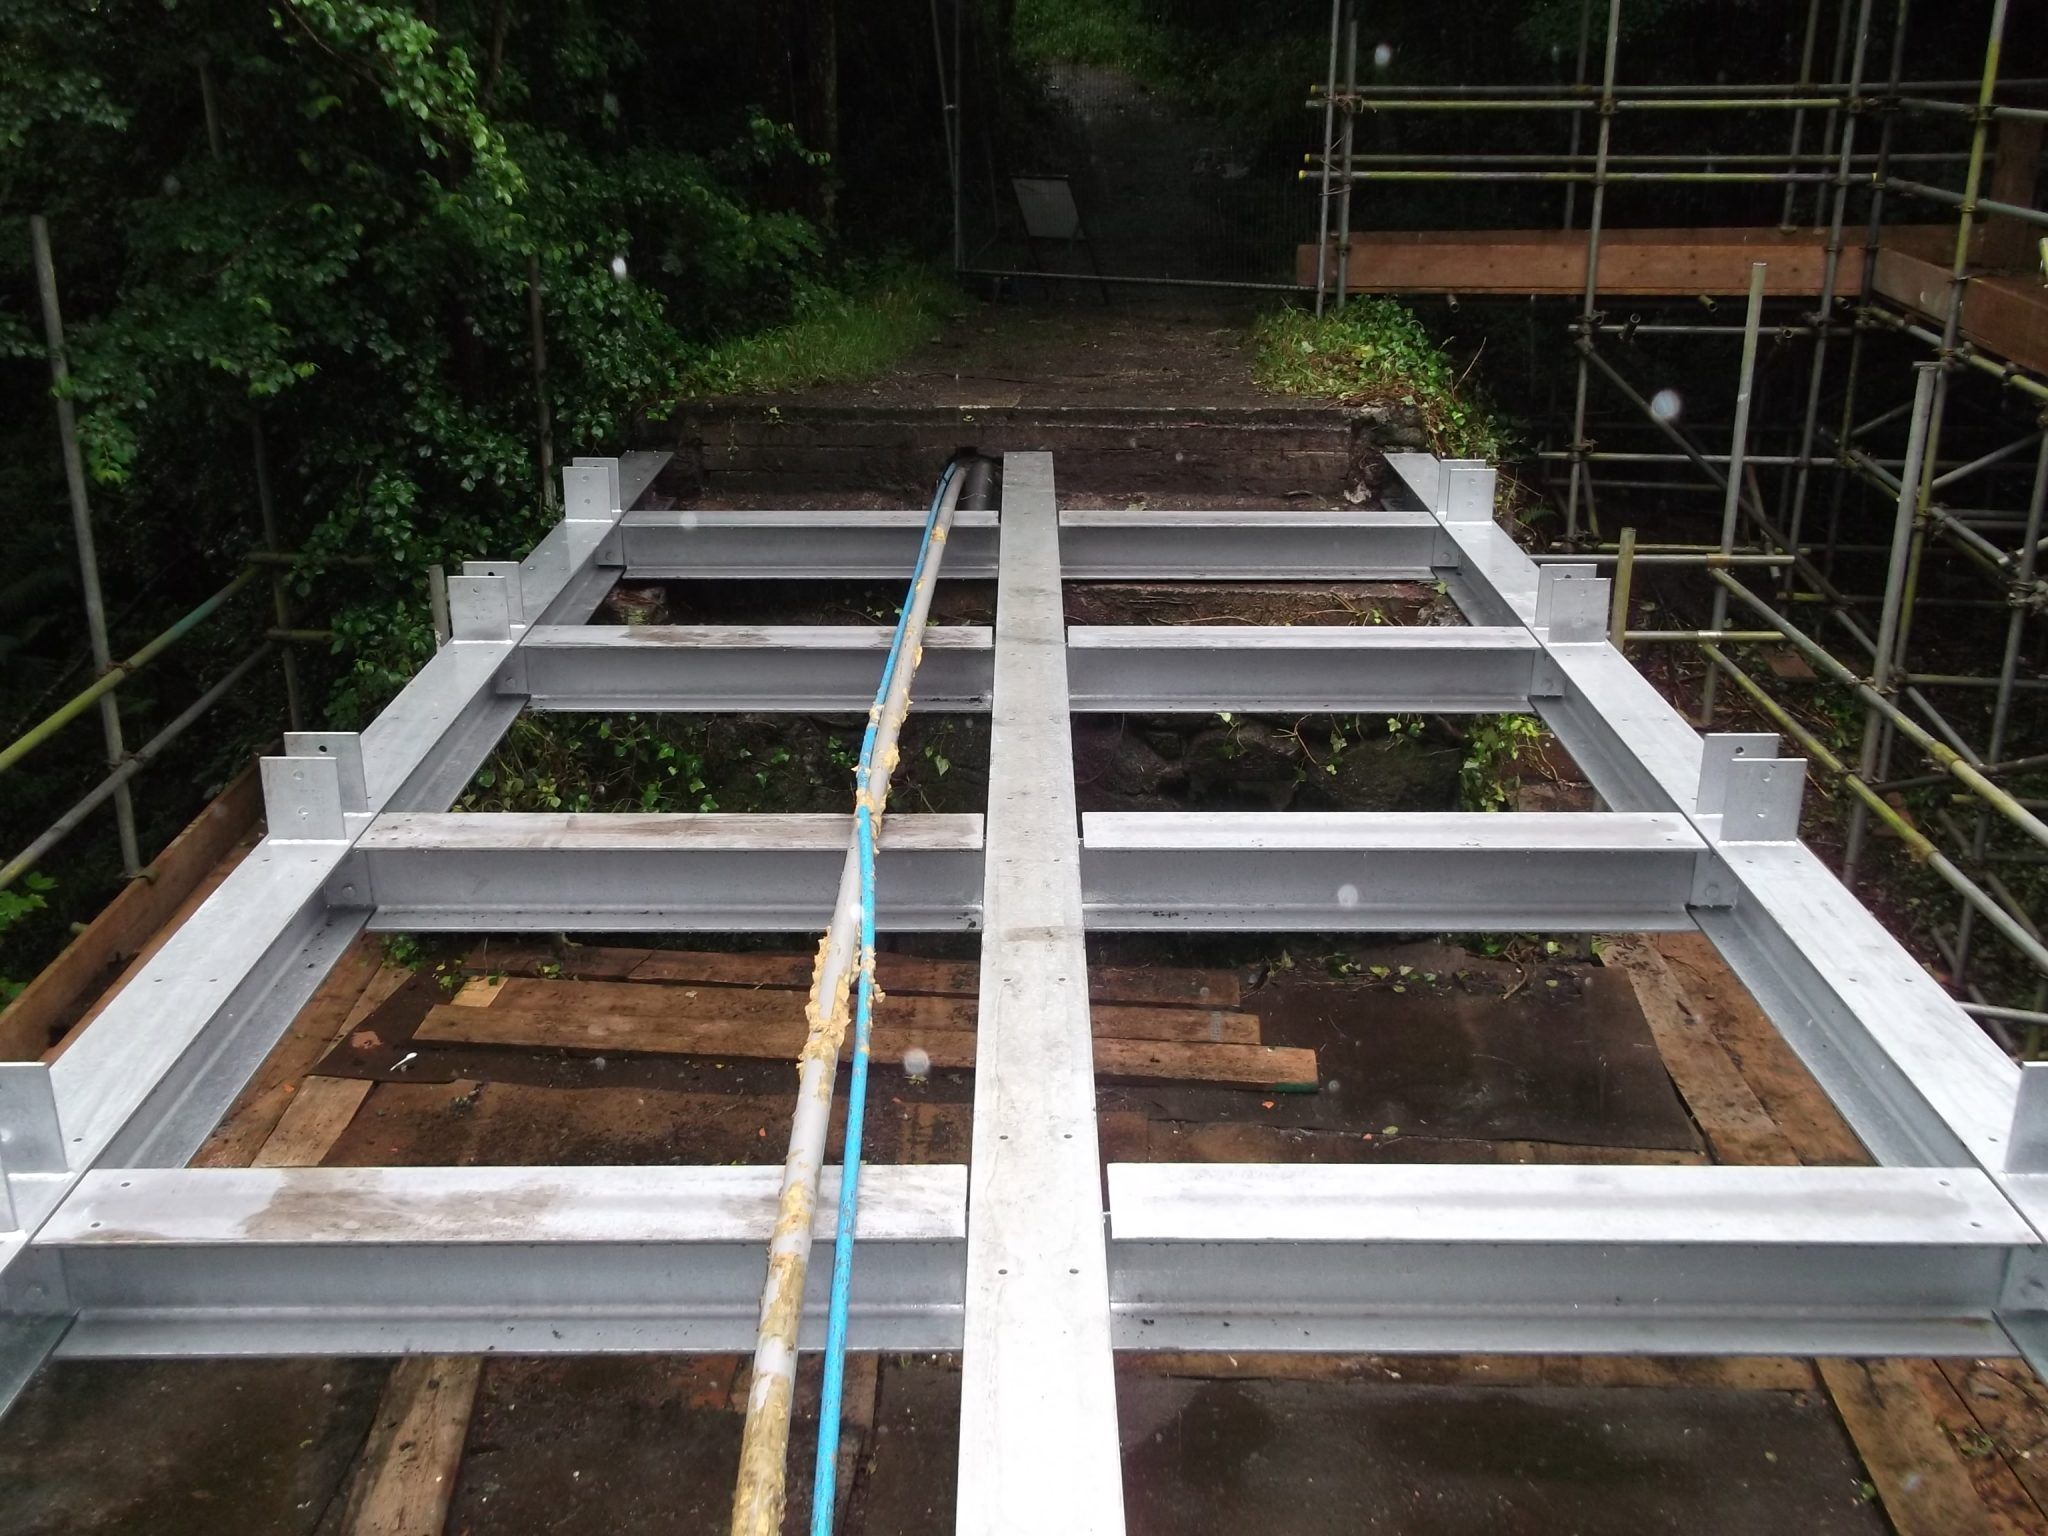 New steel frame structure